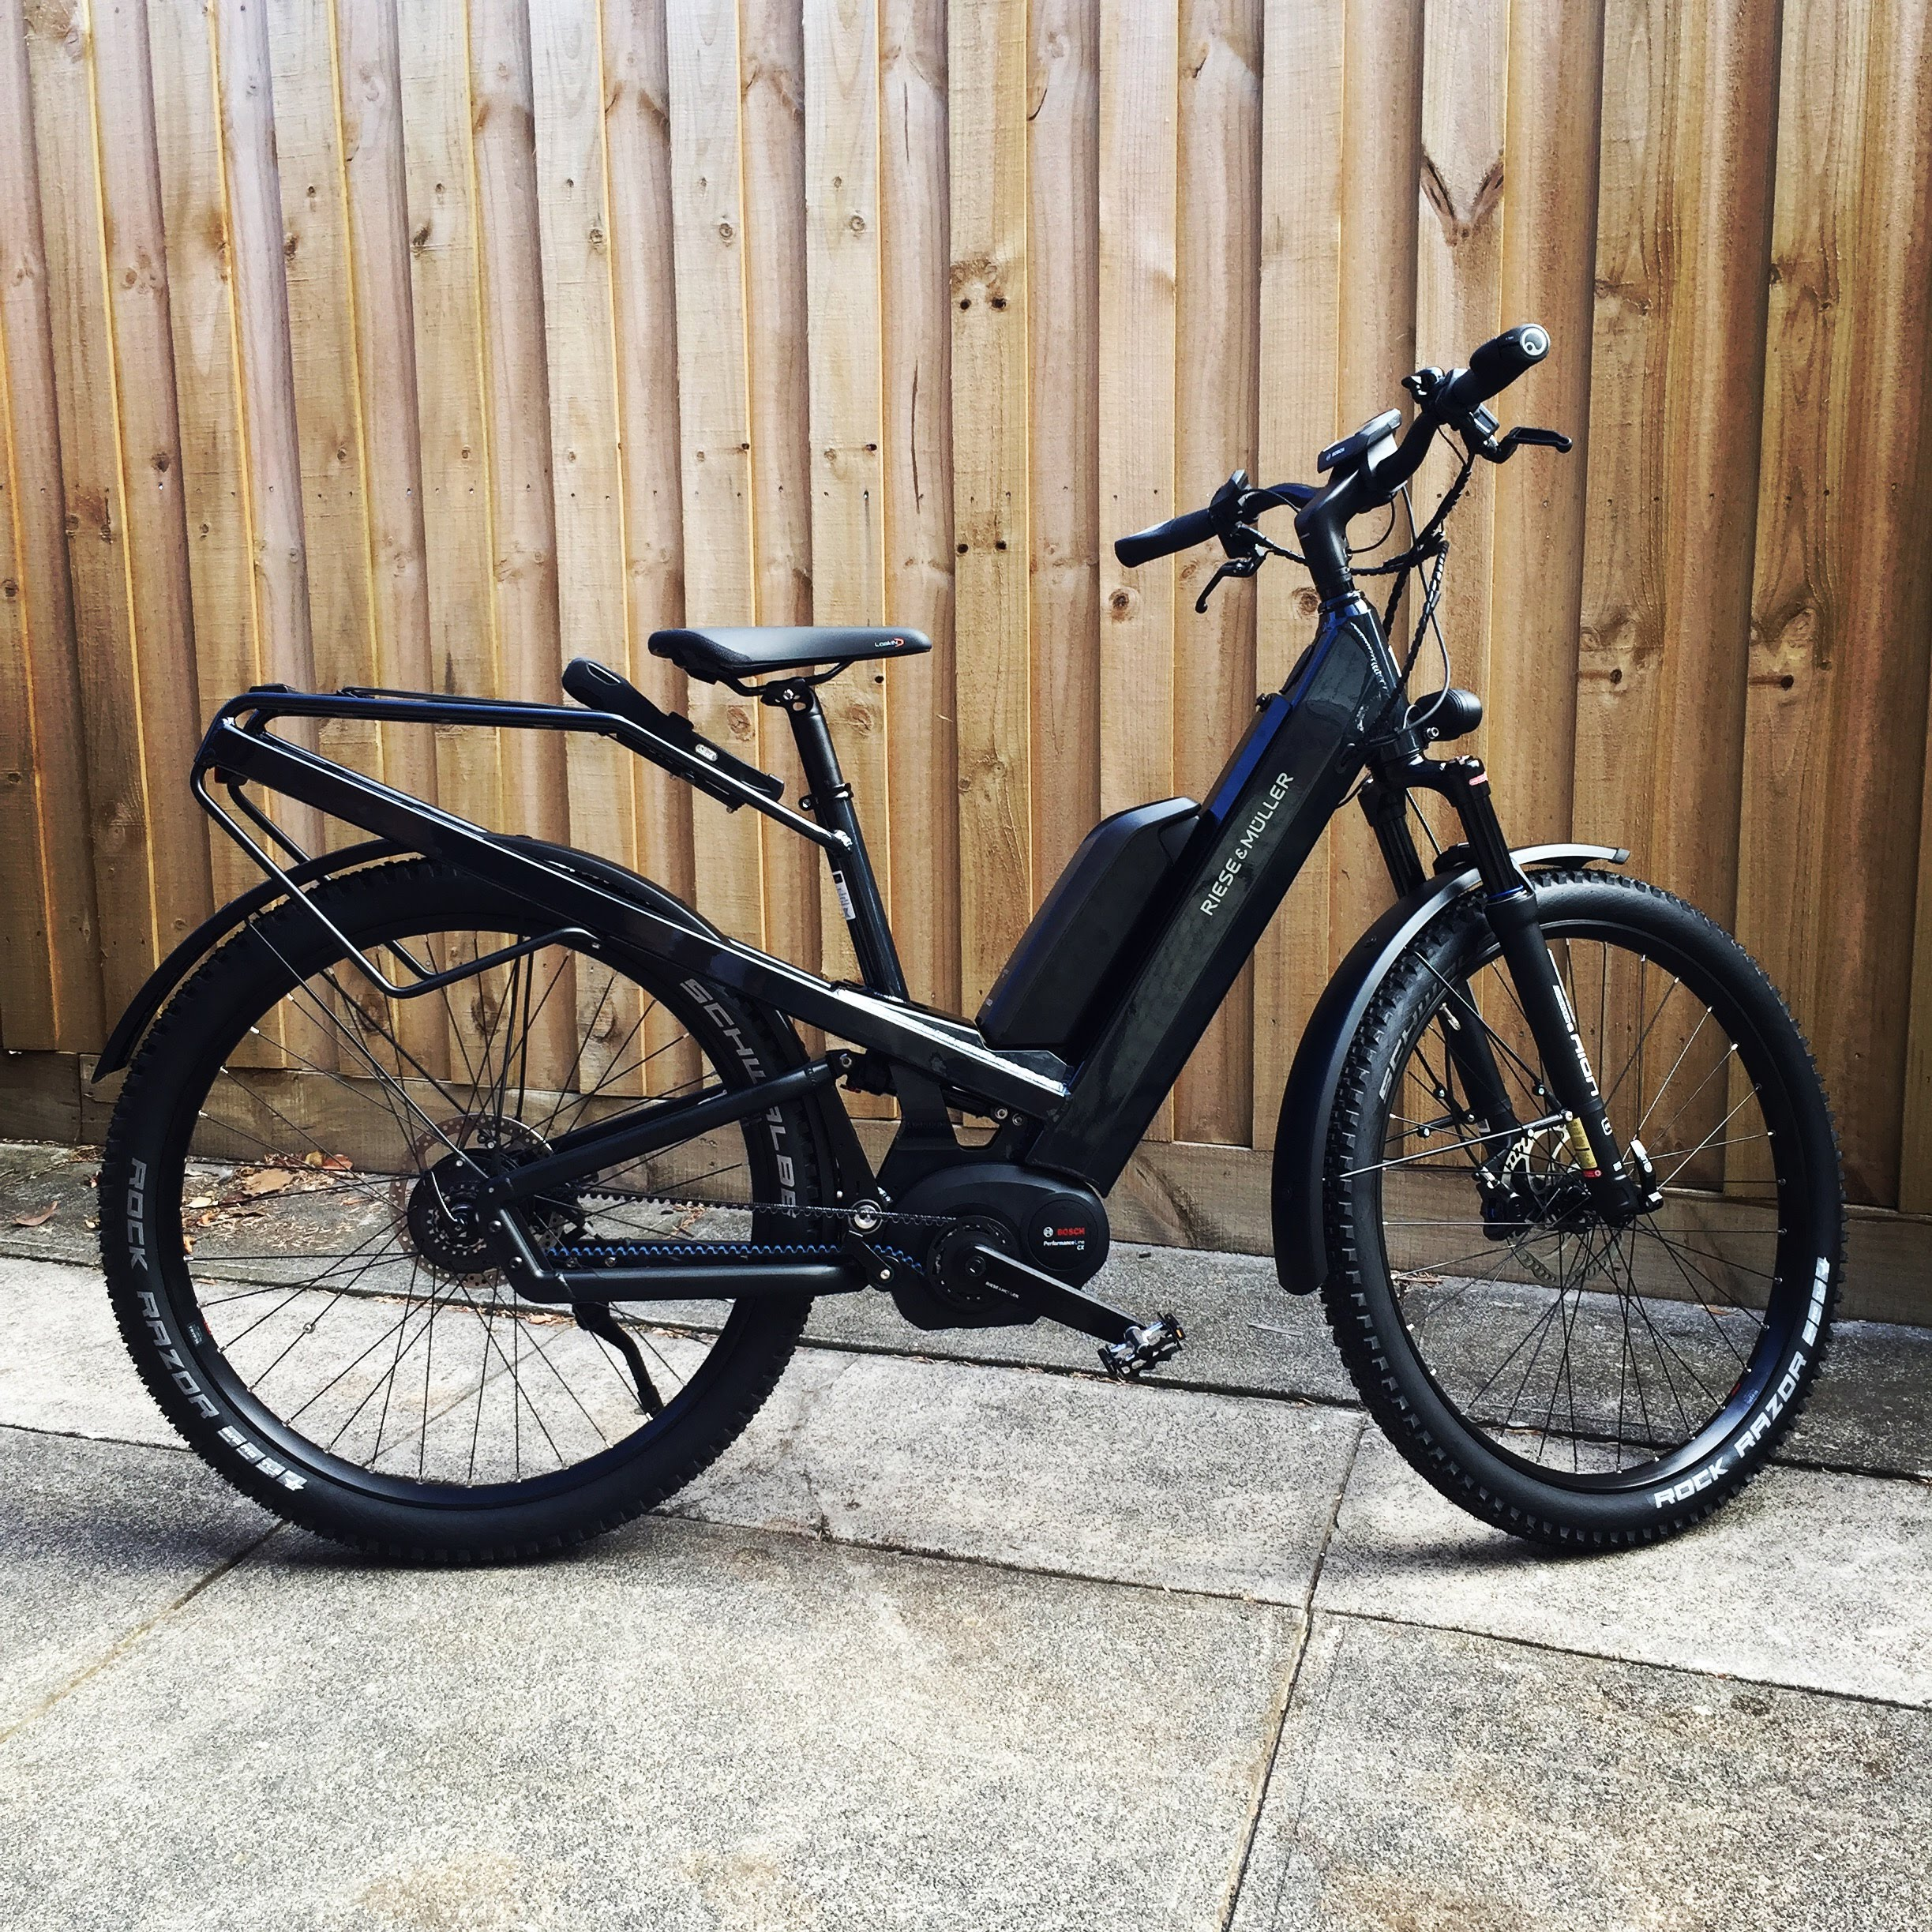 The Riese and Müller GX Rohloff (2019)